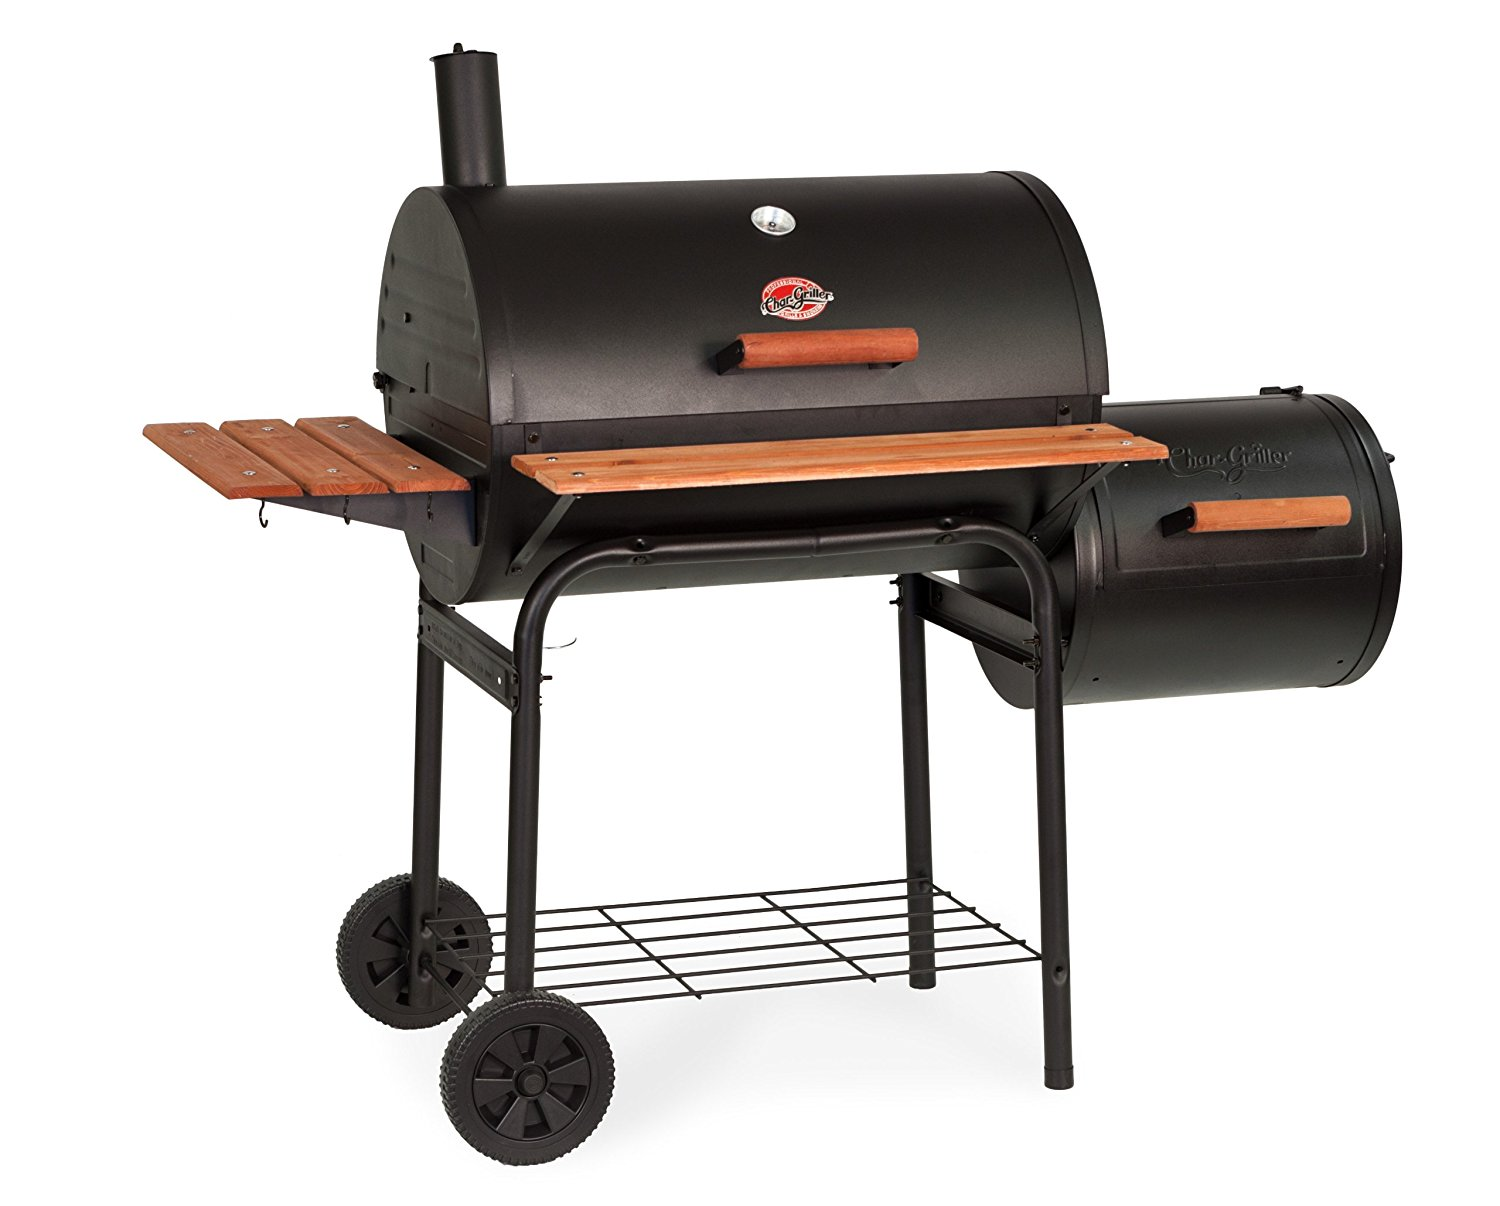 810DmoQAqSL. SL1500 10 Best Charcoal Grills 2021 - Home & Outdoor Charcoal Grill Reviews